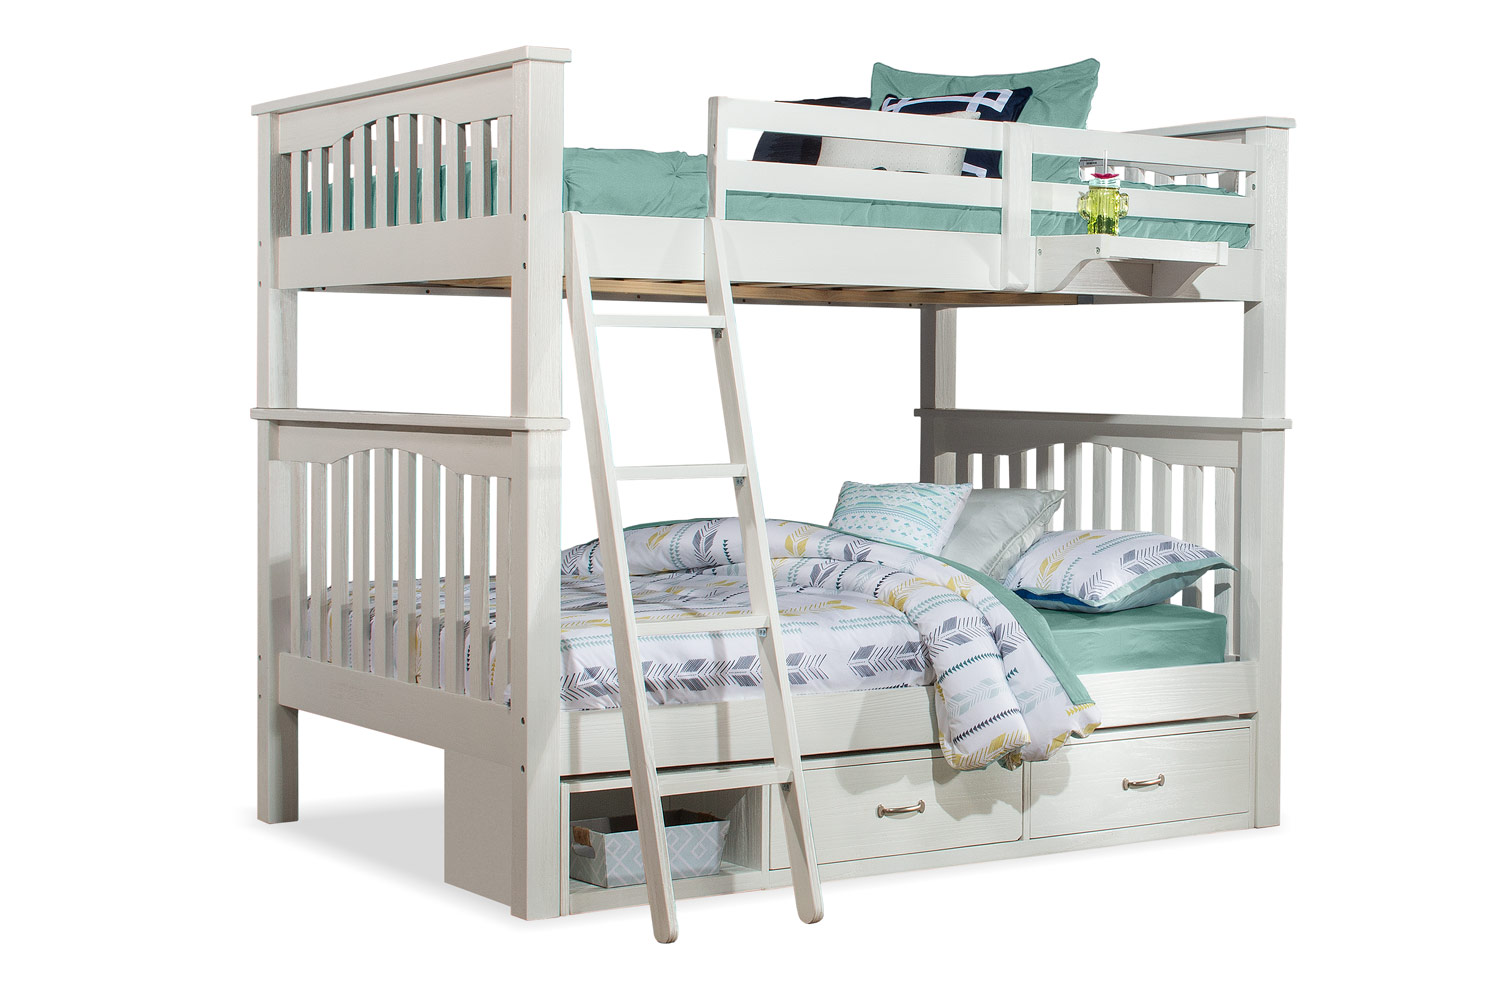 NE Kids Highlands Harper Full/Full Bunk Bed with Storage Unit and Hanging Nightstand - White Finish